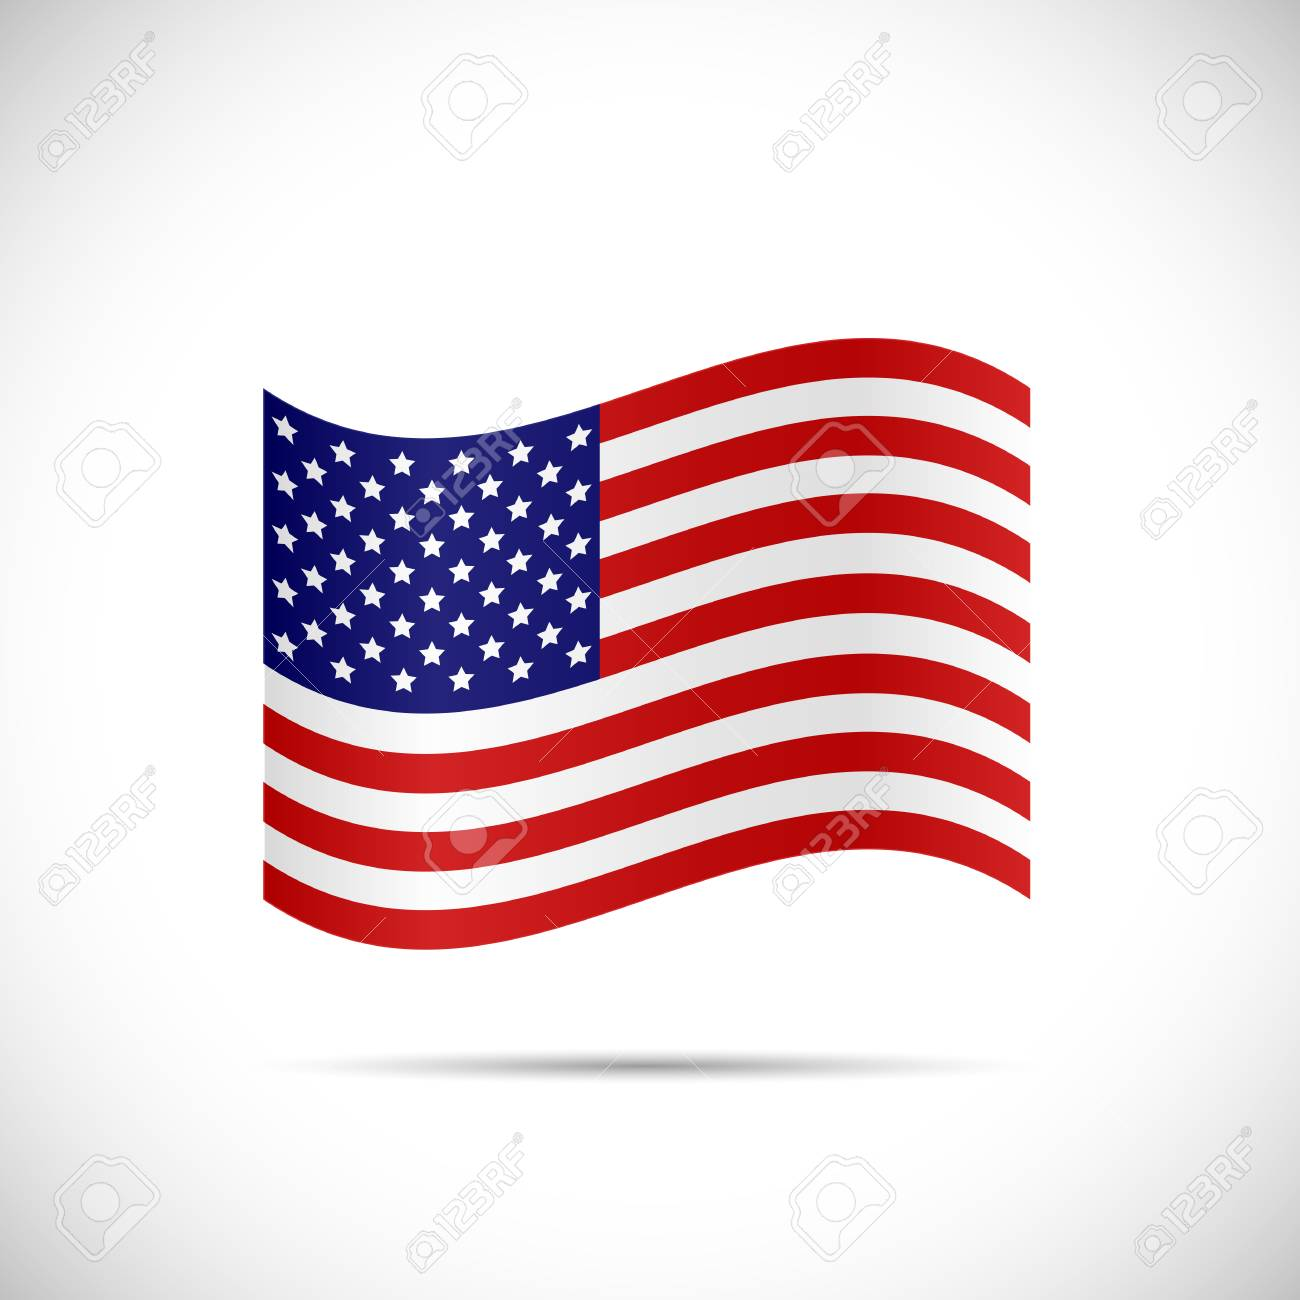 Illustration of the flag of United States of America isolated on a white background. - 34774743